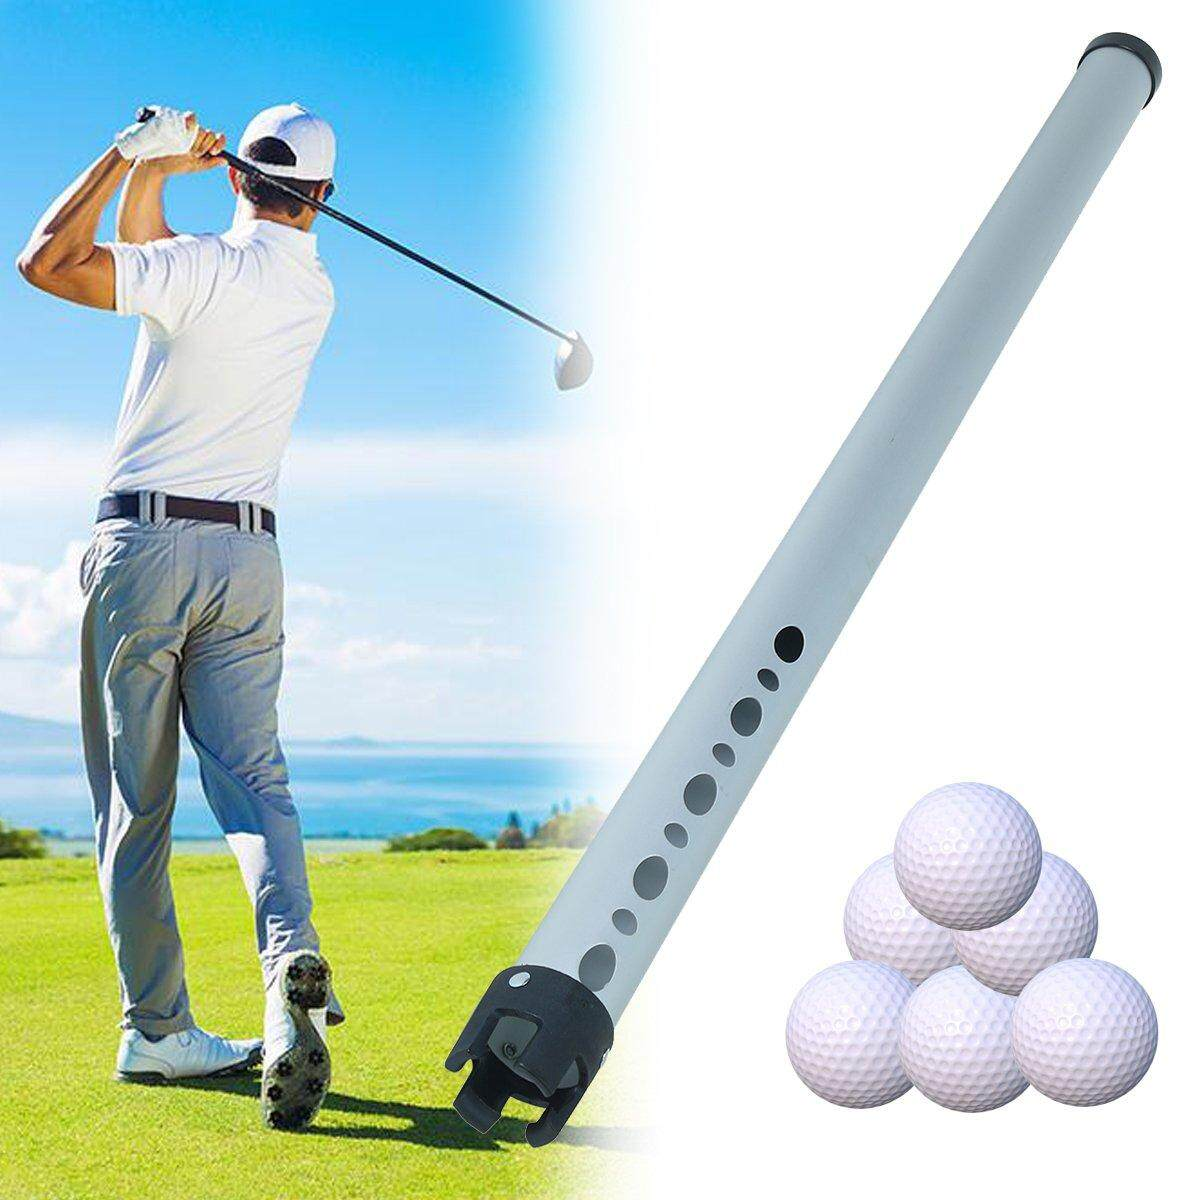 Portable Aluminum Shag Tube Practice Golf Ball Shagger Picker Hold Up 23 Balls By Moonbeam.